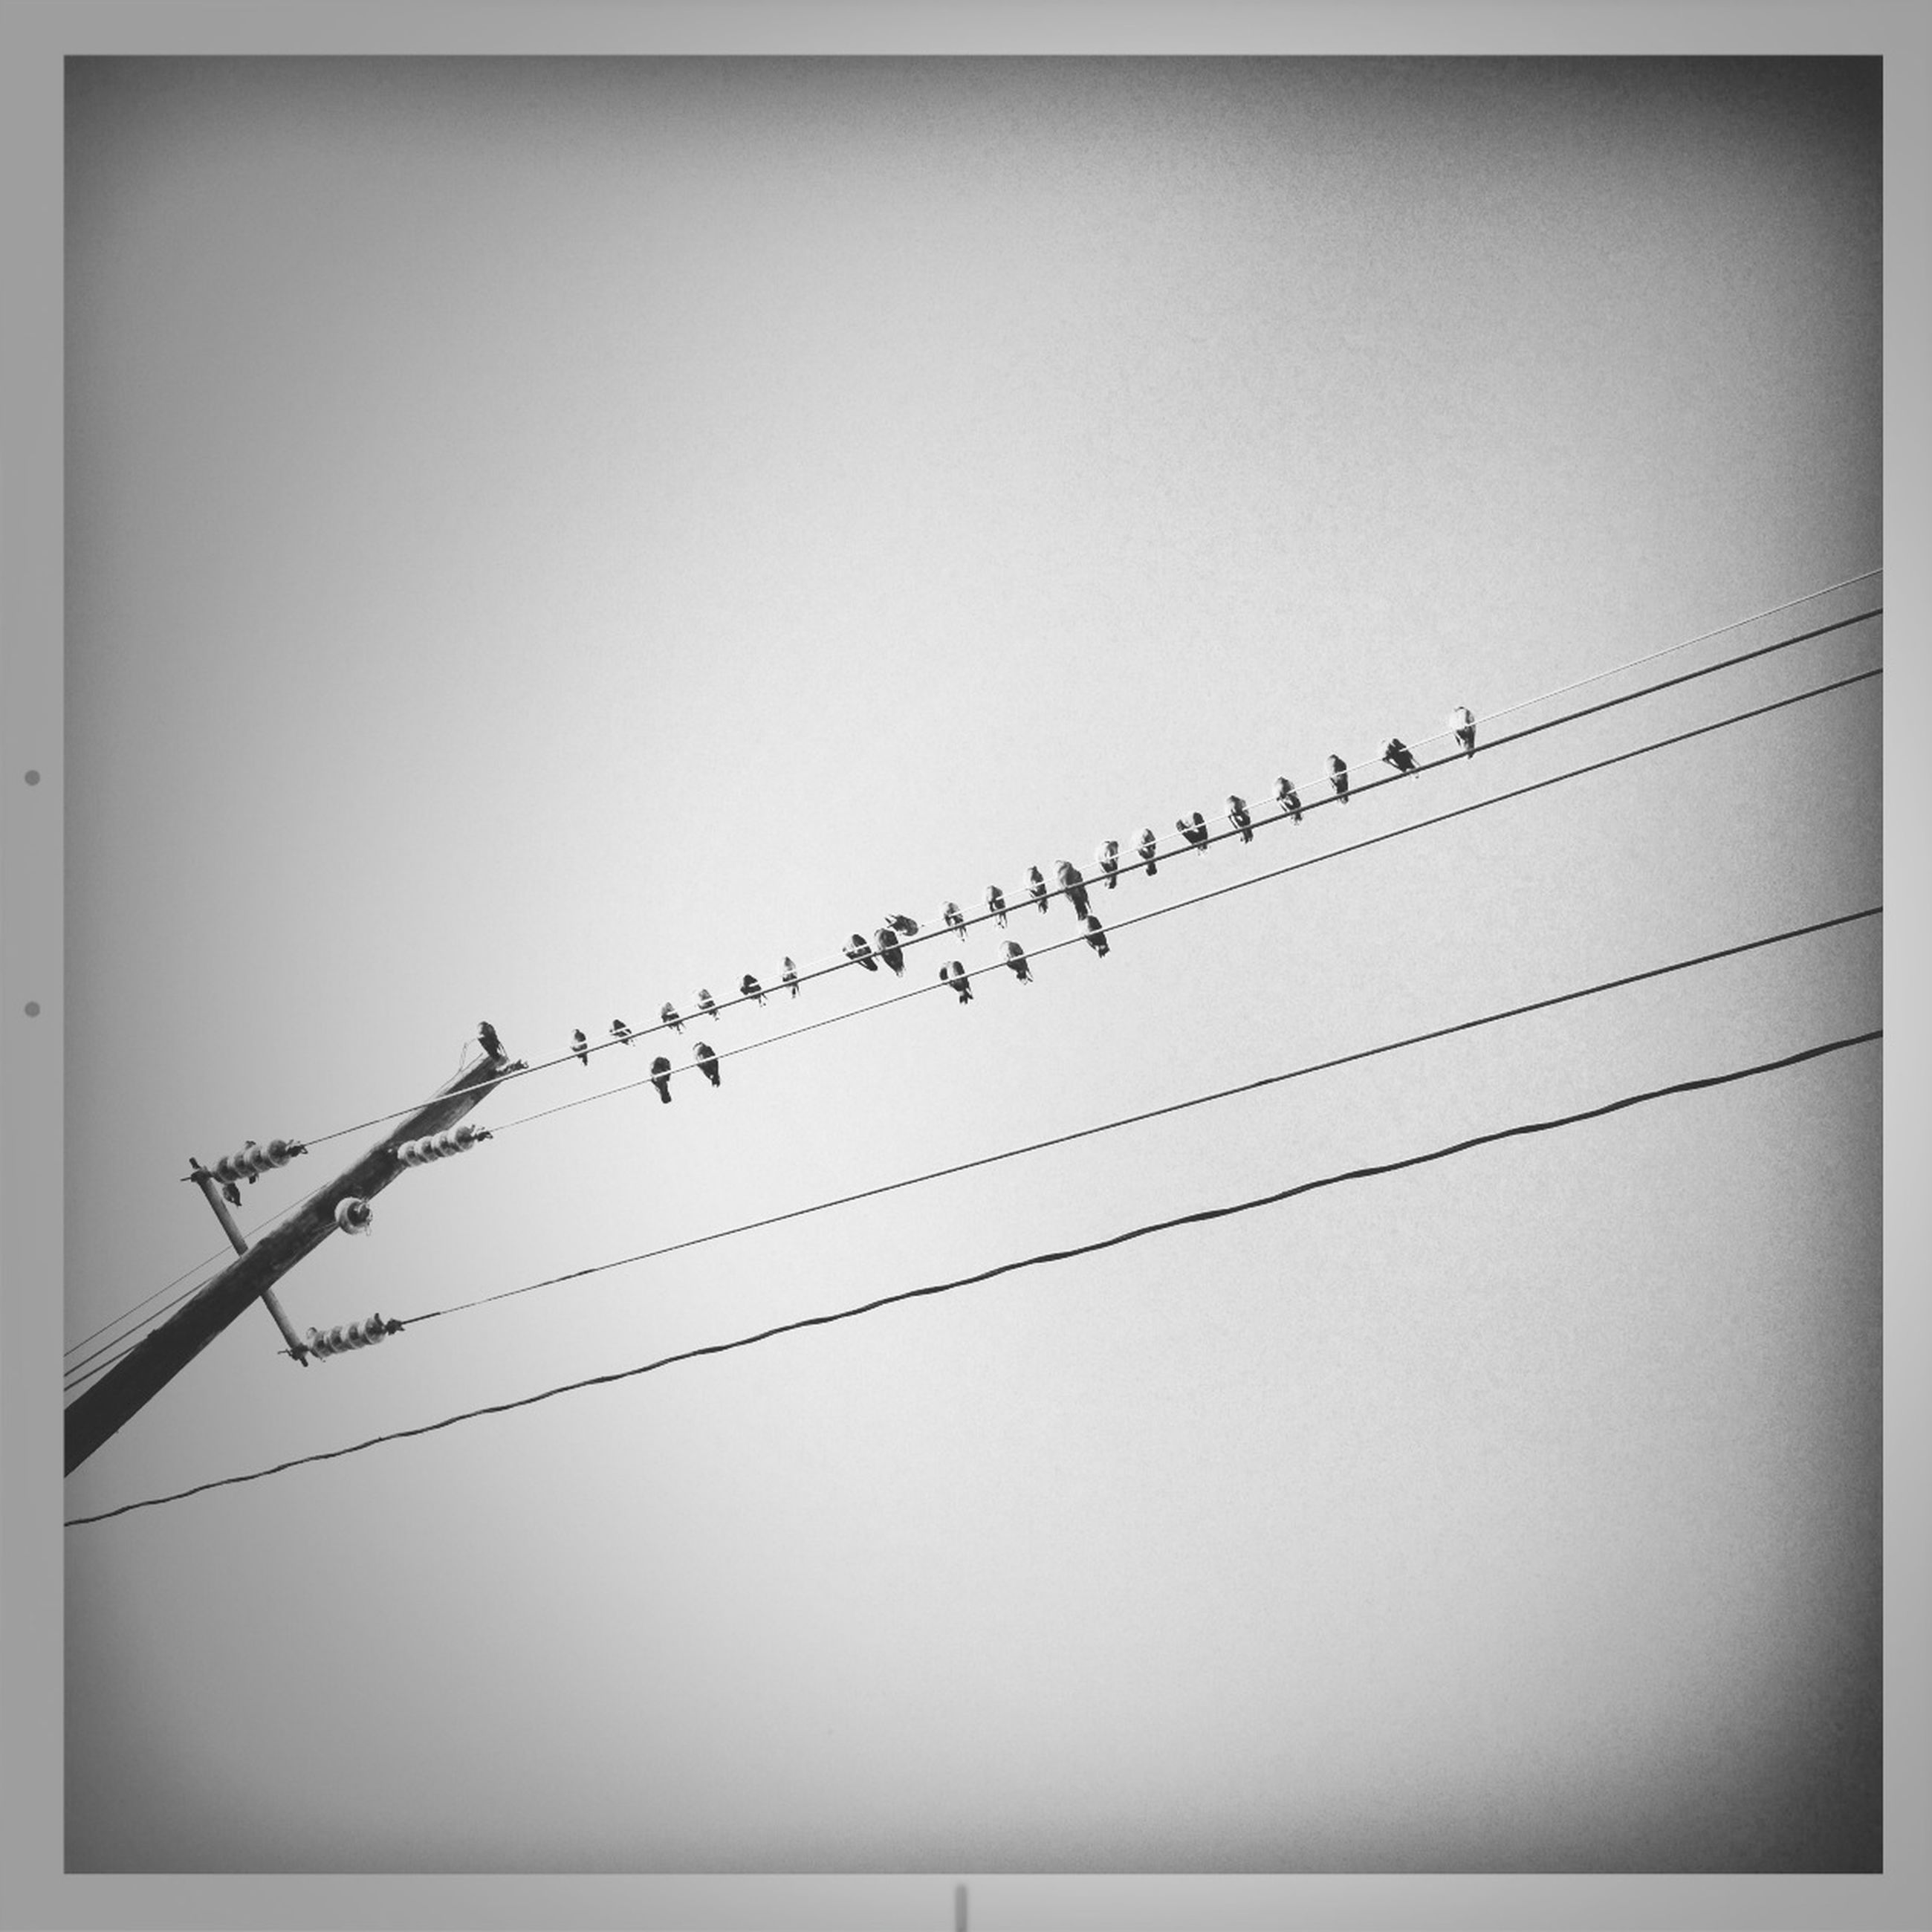 bird, animal themes, animals in the wild, wildlife, low angle view, perching, flying, clear sky, power line, cable, flock of birds, silhouette, copy space, connection, nature, no people, outdoors, zoology, day